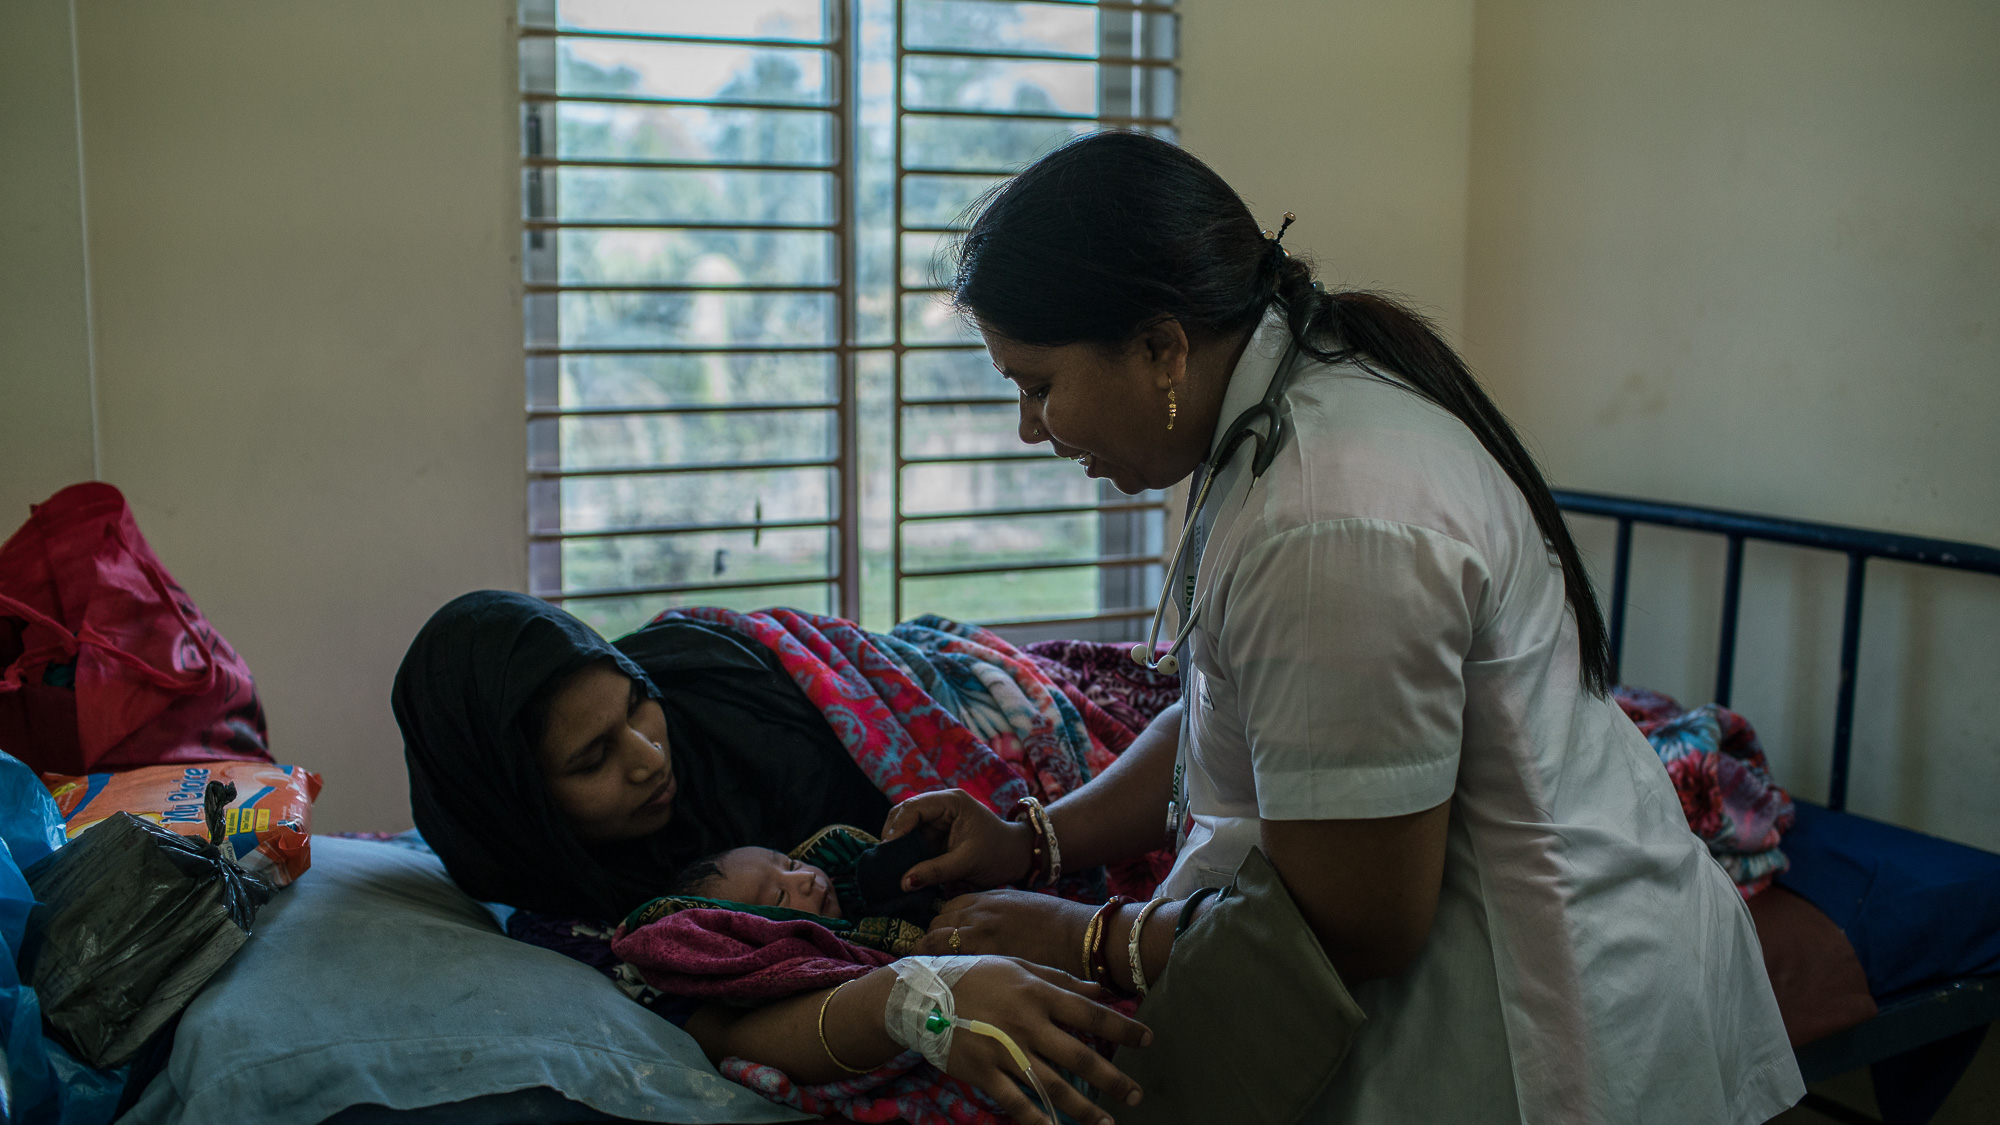 Shanta Das, a paramedic at Smiling Sun Clinic, consults with patients.